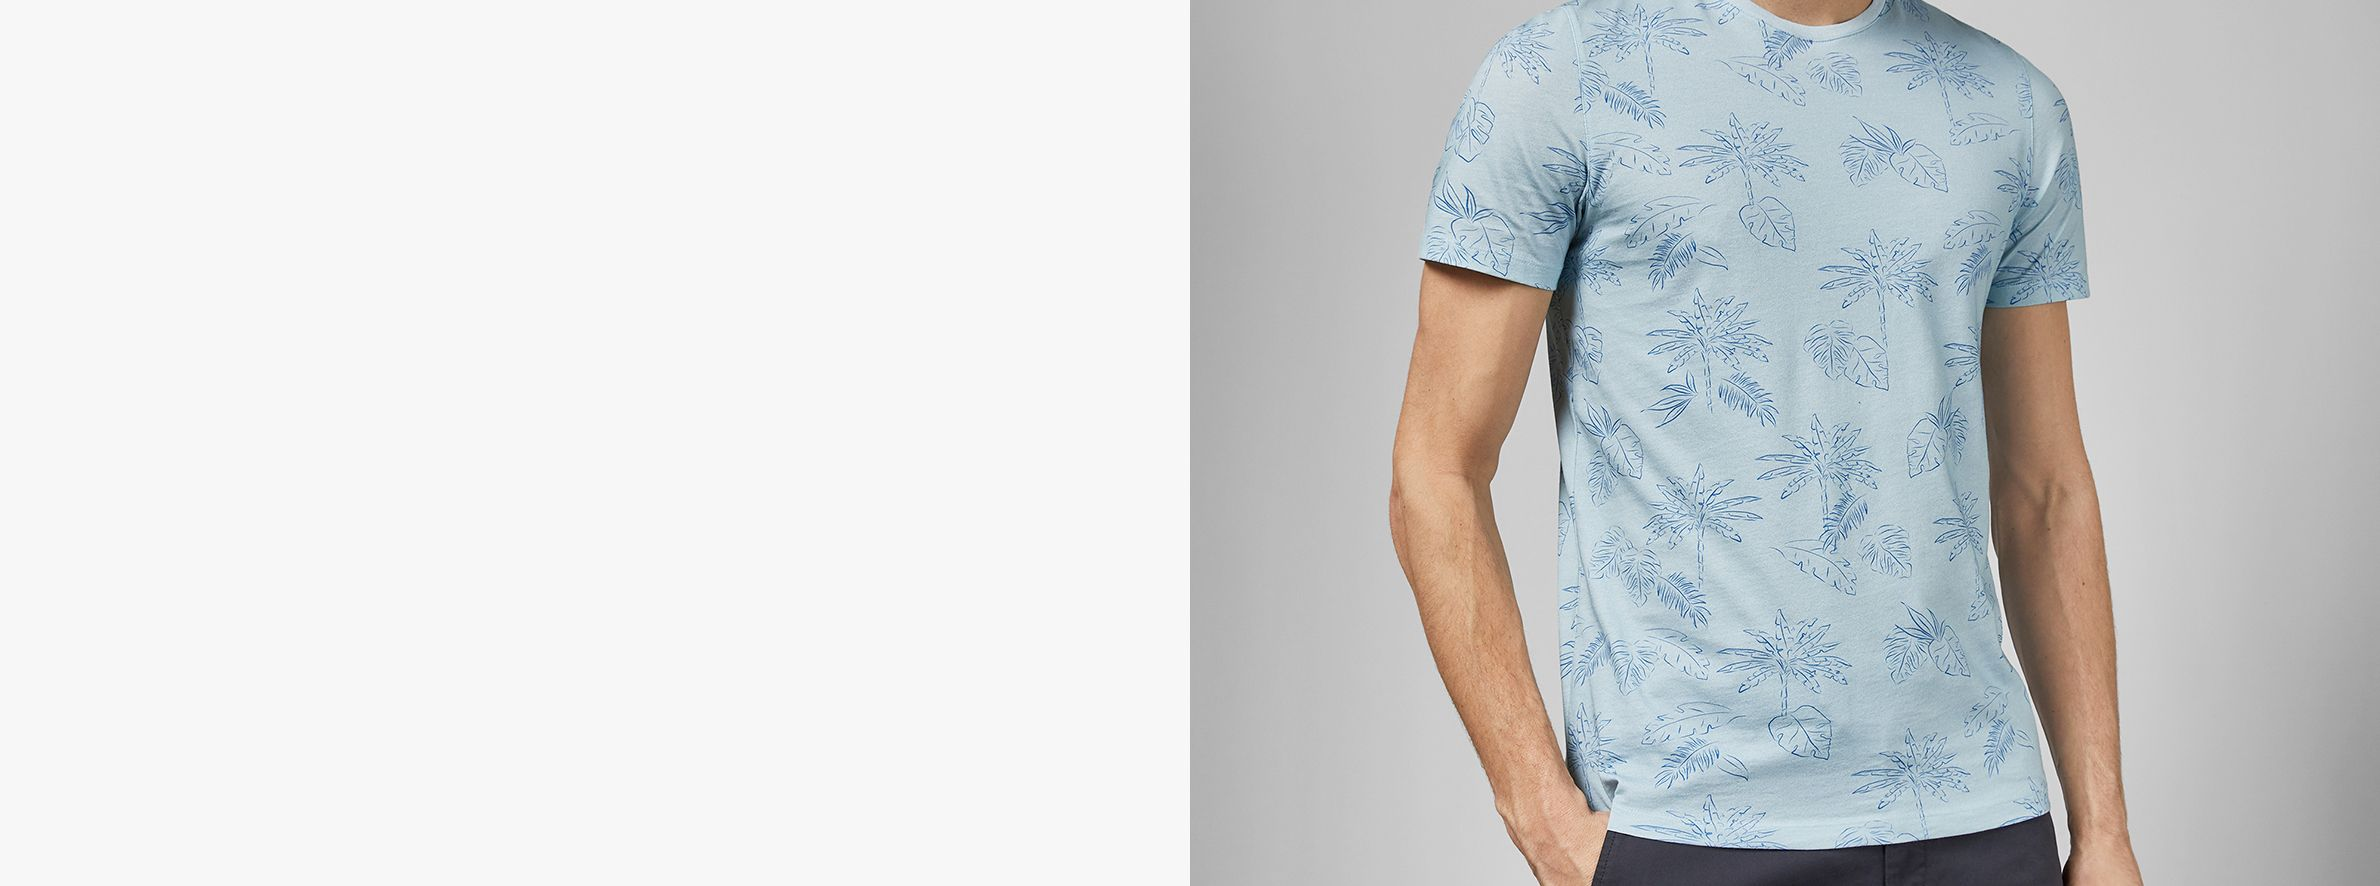 9e2f36e88 Men's T-Shirts | Diesel, Selected Homme, Ted Baker | John Lewis